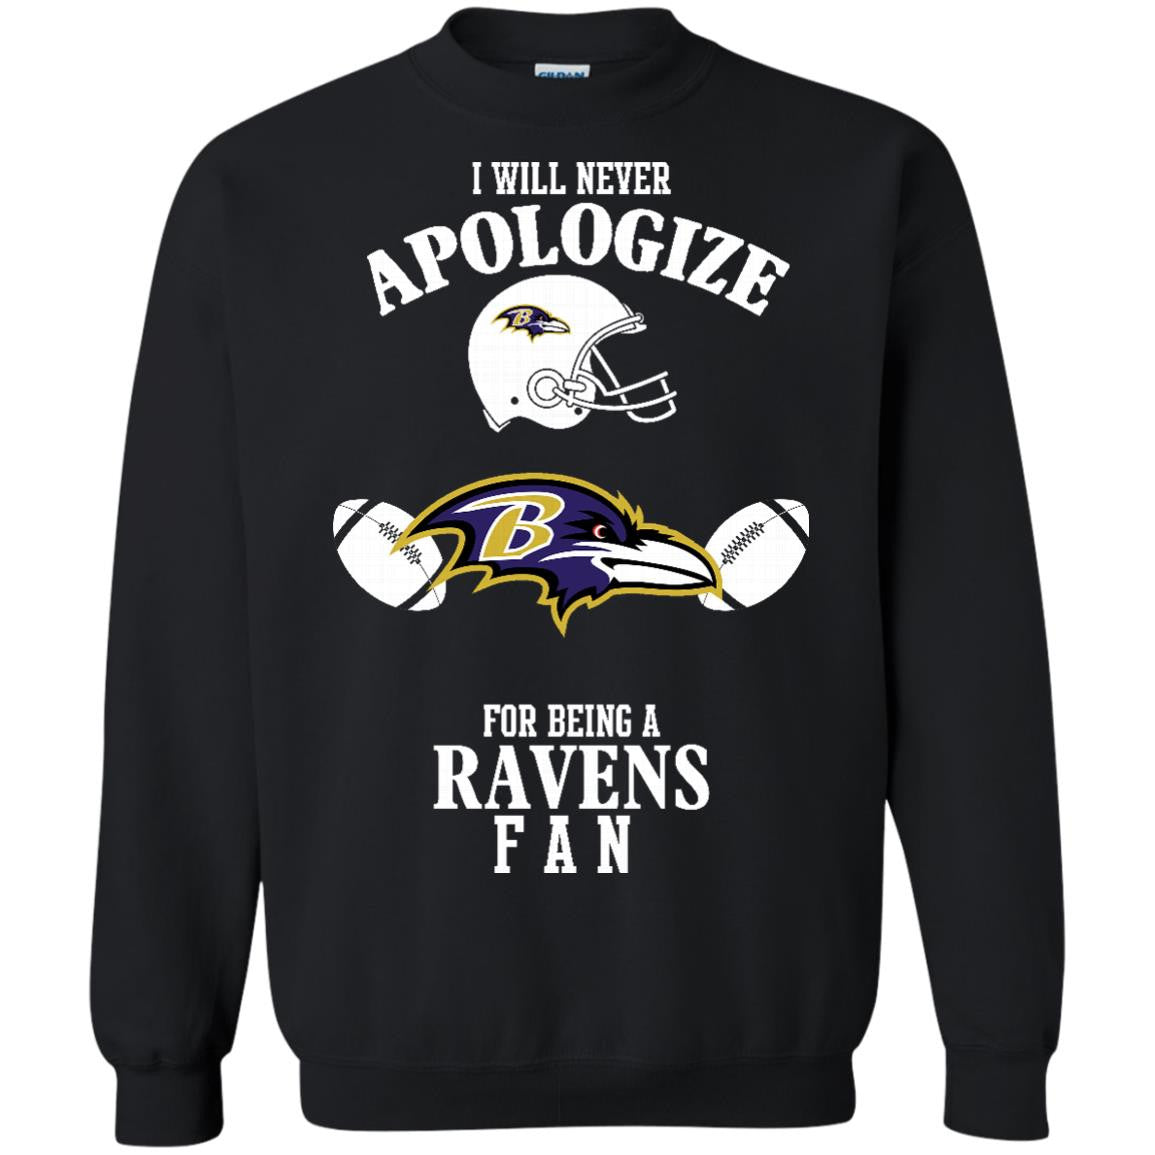 Baltimore Ravens Shirts Never Apologize For Being Ravens Fan T-Shirts Hoodies Sweatshirts